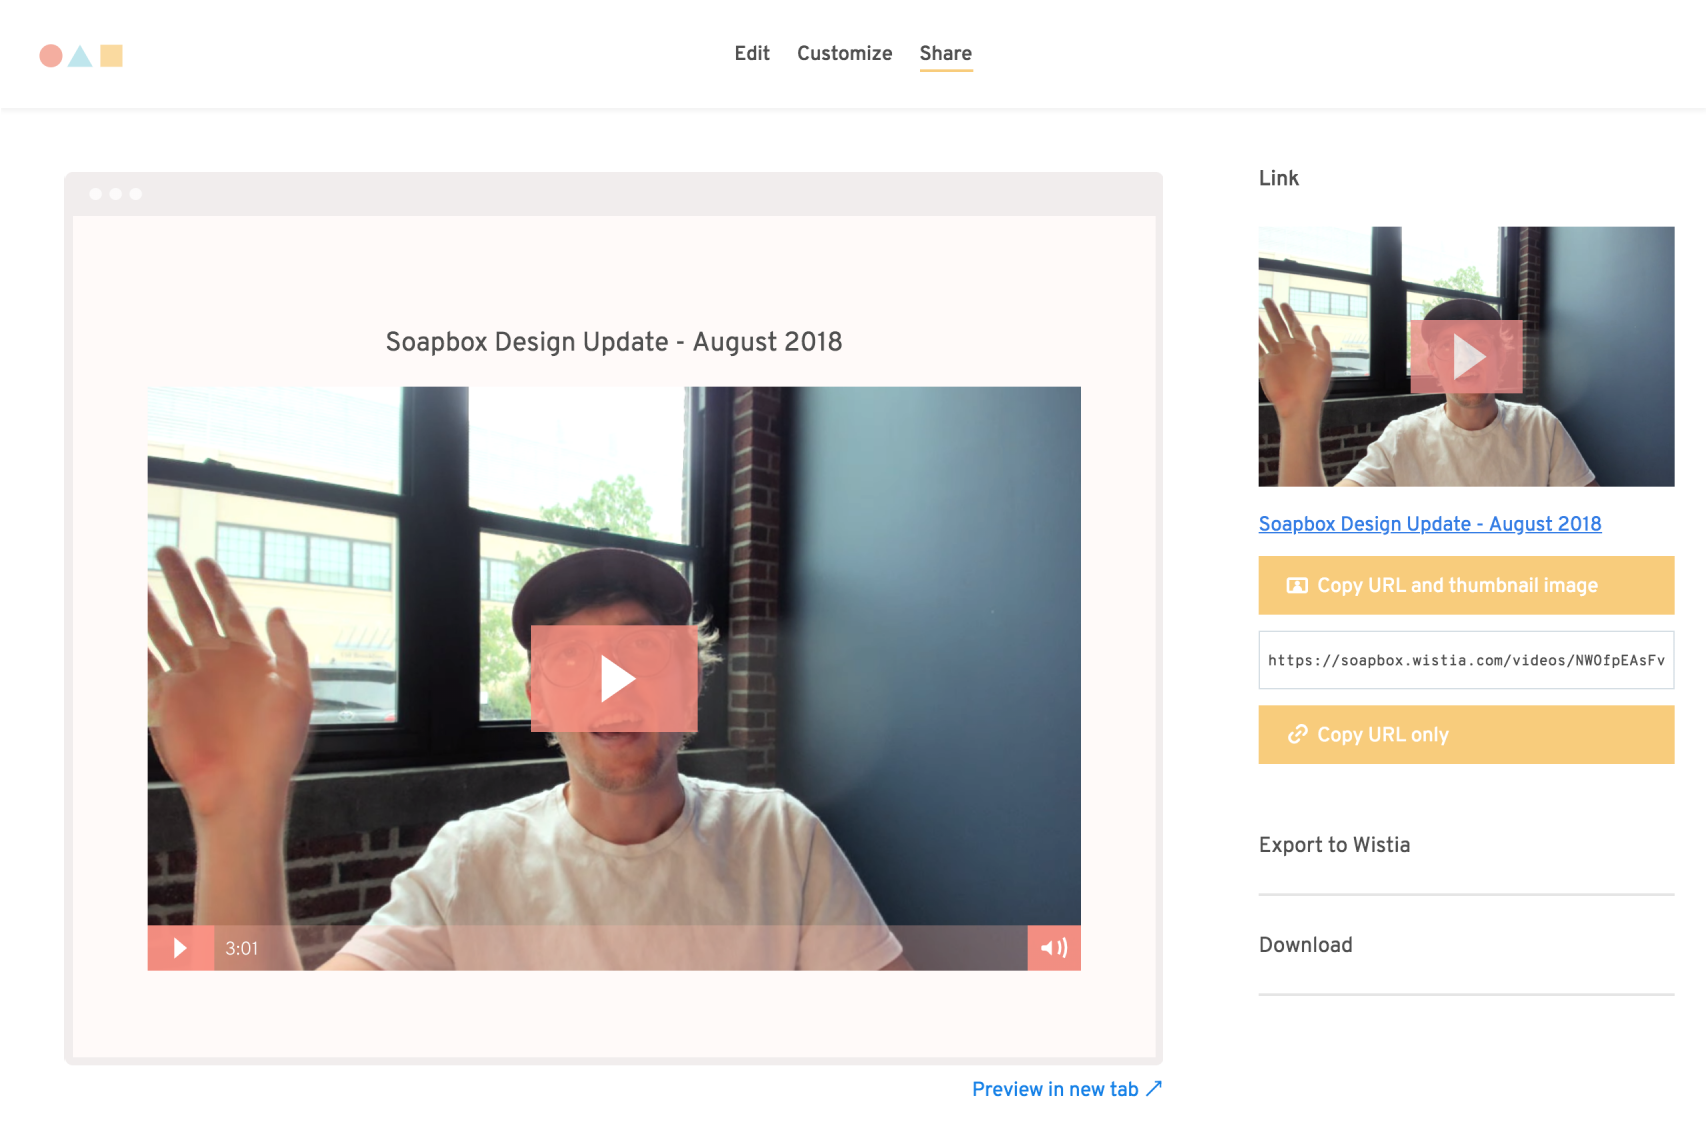 How We Redesigned the Soapbox UI and Editing Experience to